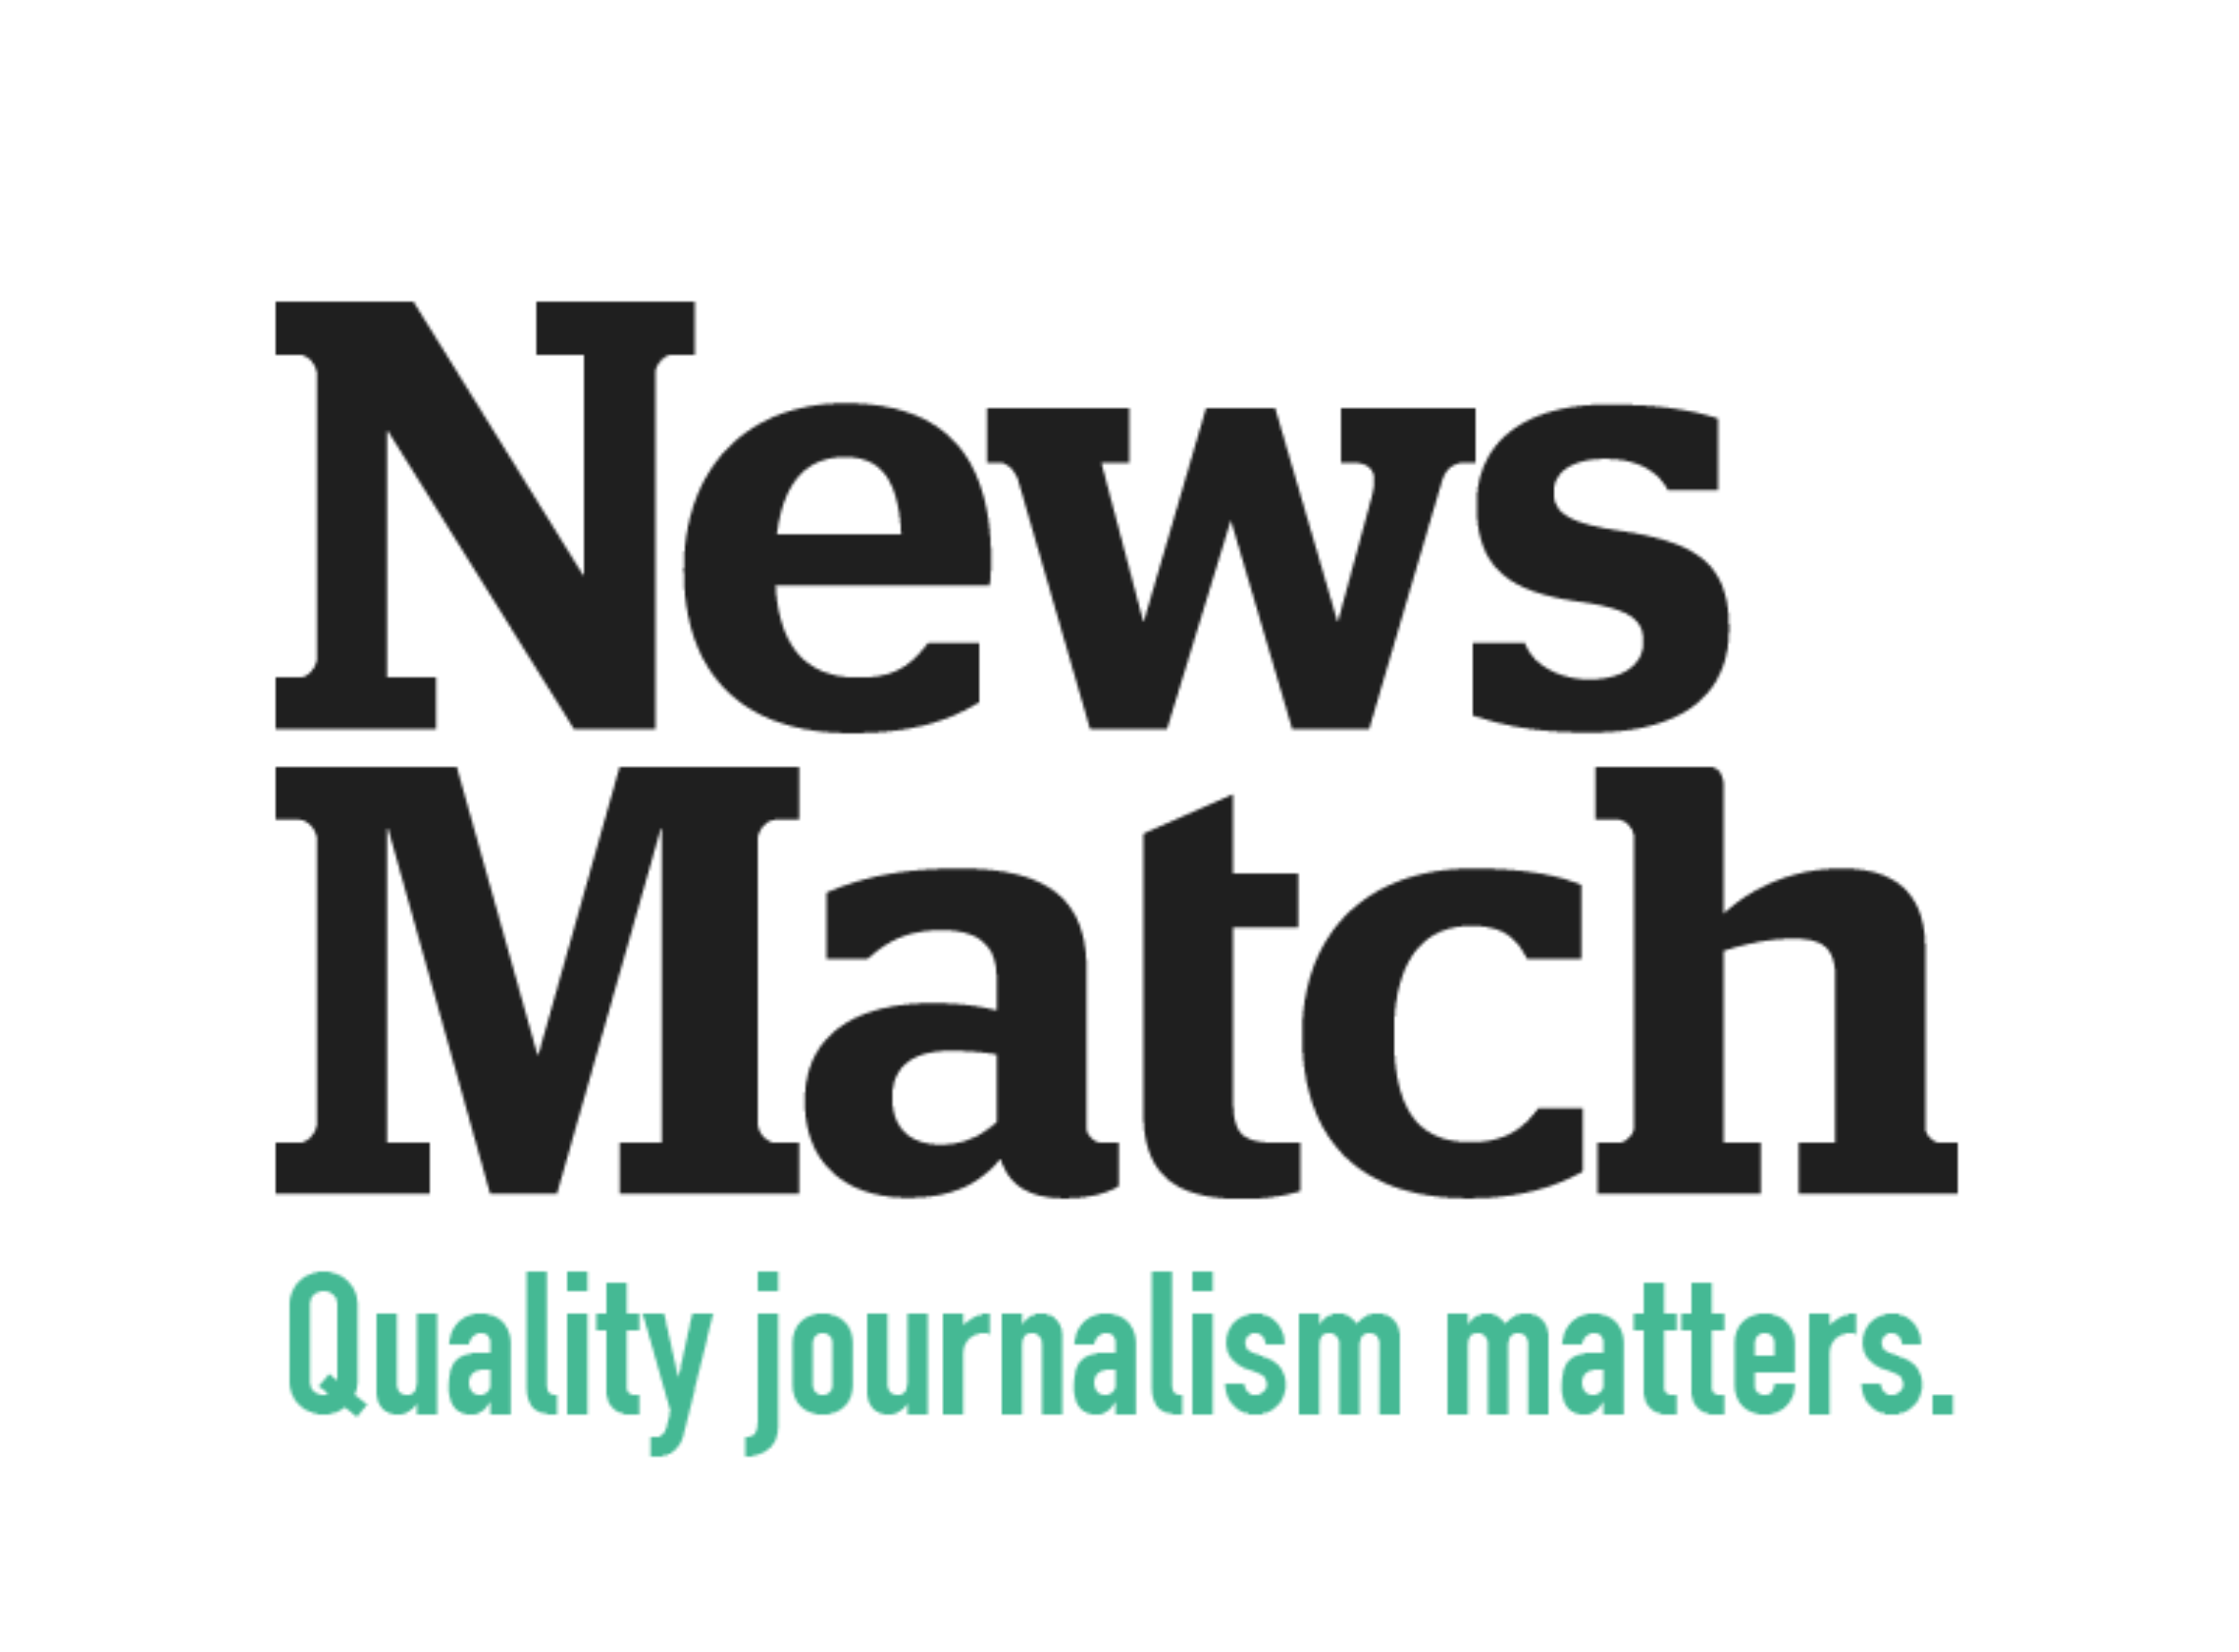 The News Match logo is plain text that reads: News Match. Quality Journalism Matters.